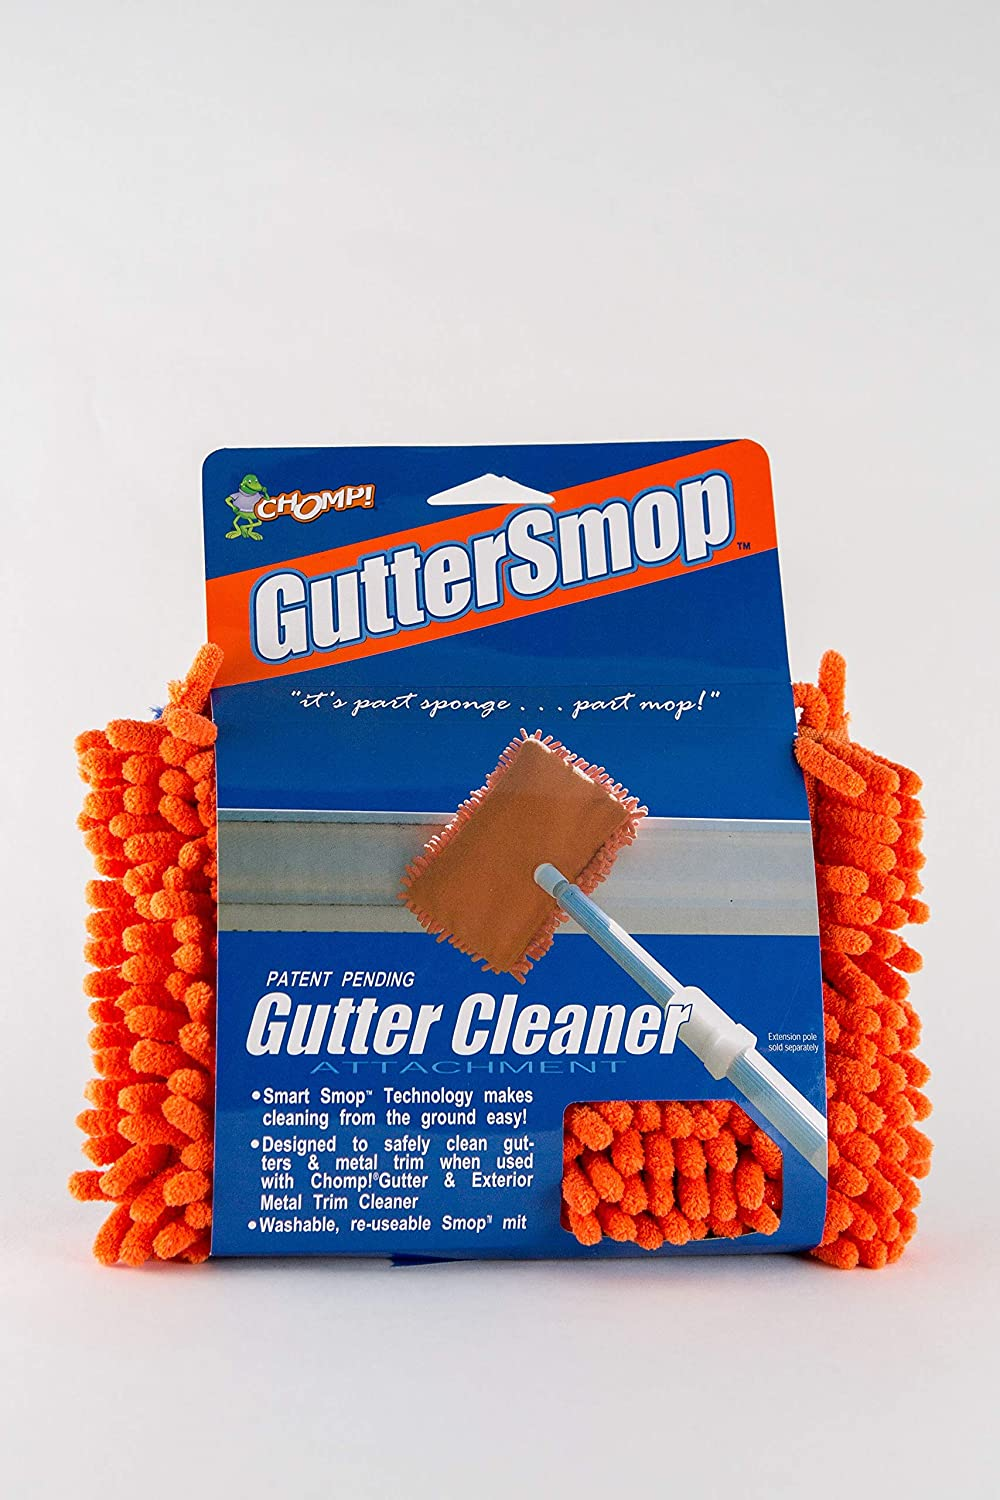 CHOMP Microfiber Gutter Cleaner Tool: Ultimate Gutter Cleaning Smop for All Types of Rain Gutters, Siding and Metal Trim - Instantly Clean Black Streaks, Mold, Mildew, Algae, Dirt and More